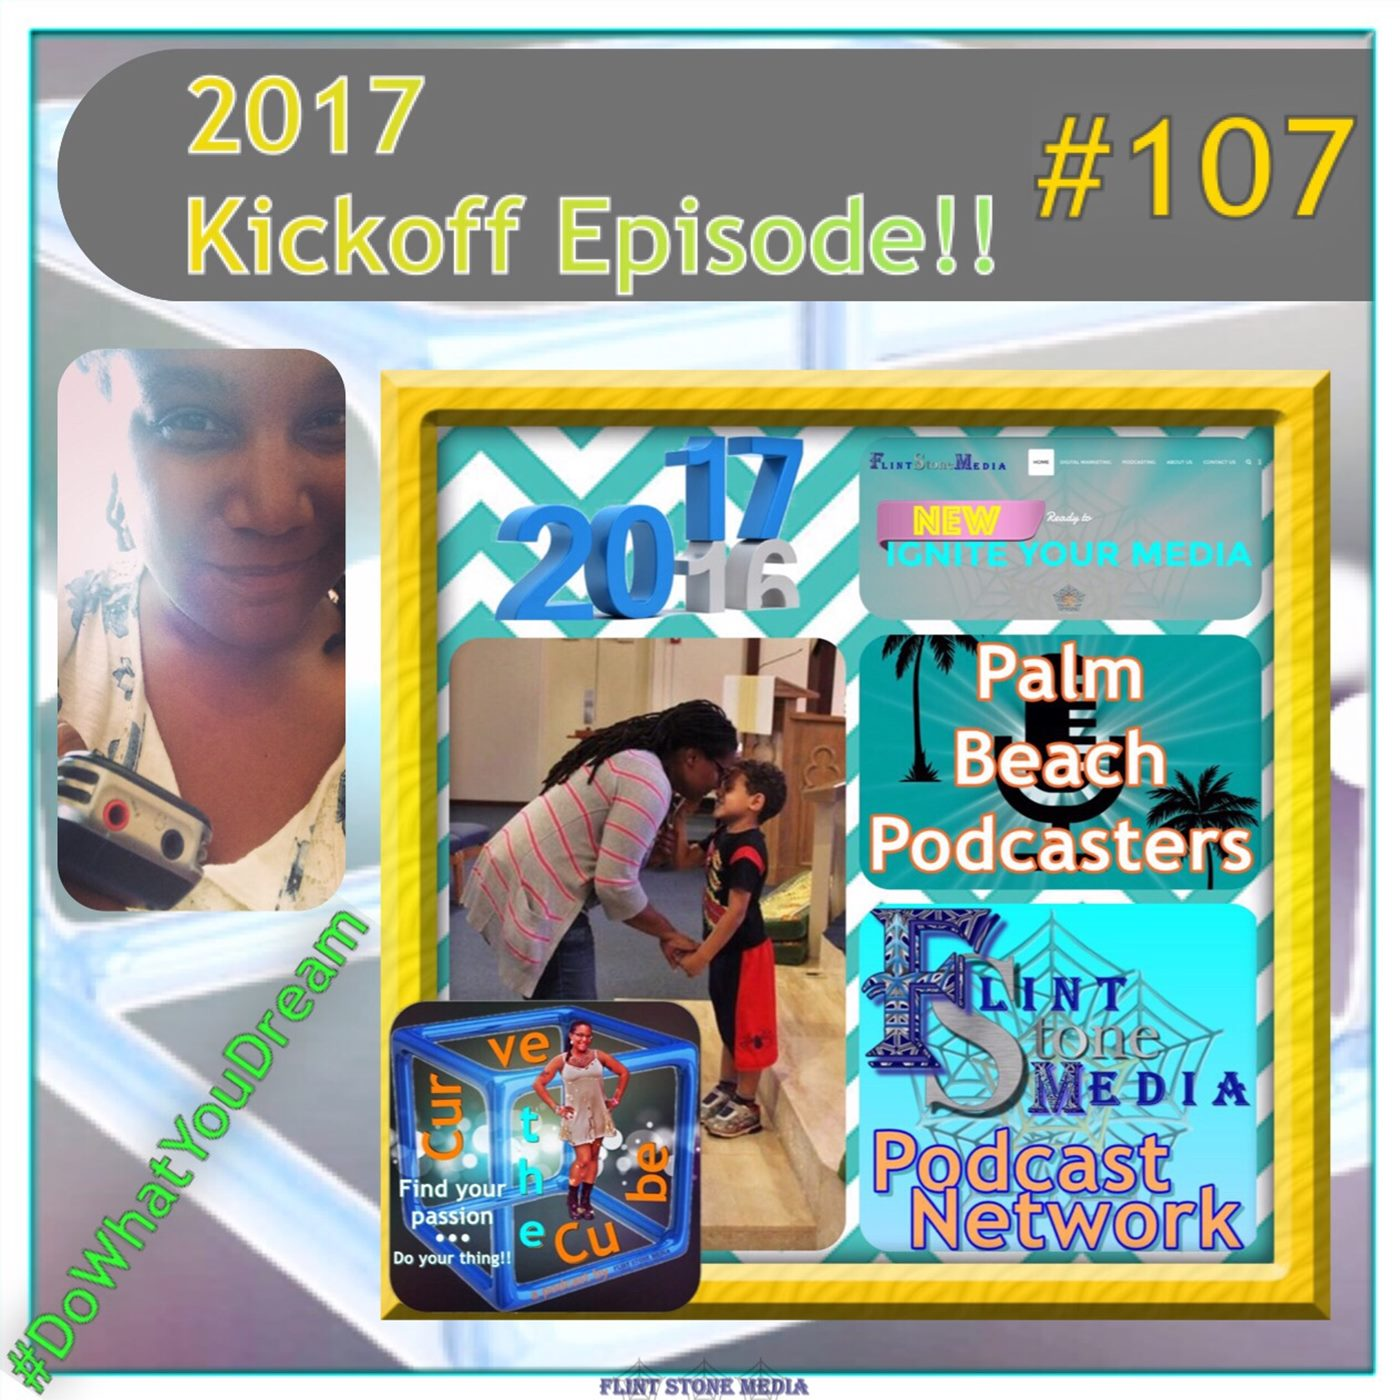 #107 - SOLOCAST - 2017 Kickoff Episode - FINALLY - 20170204